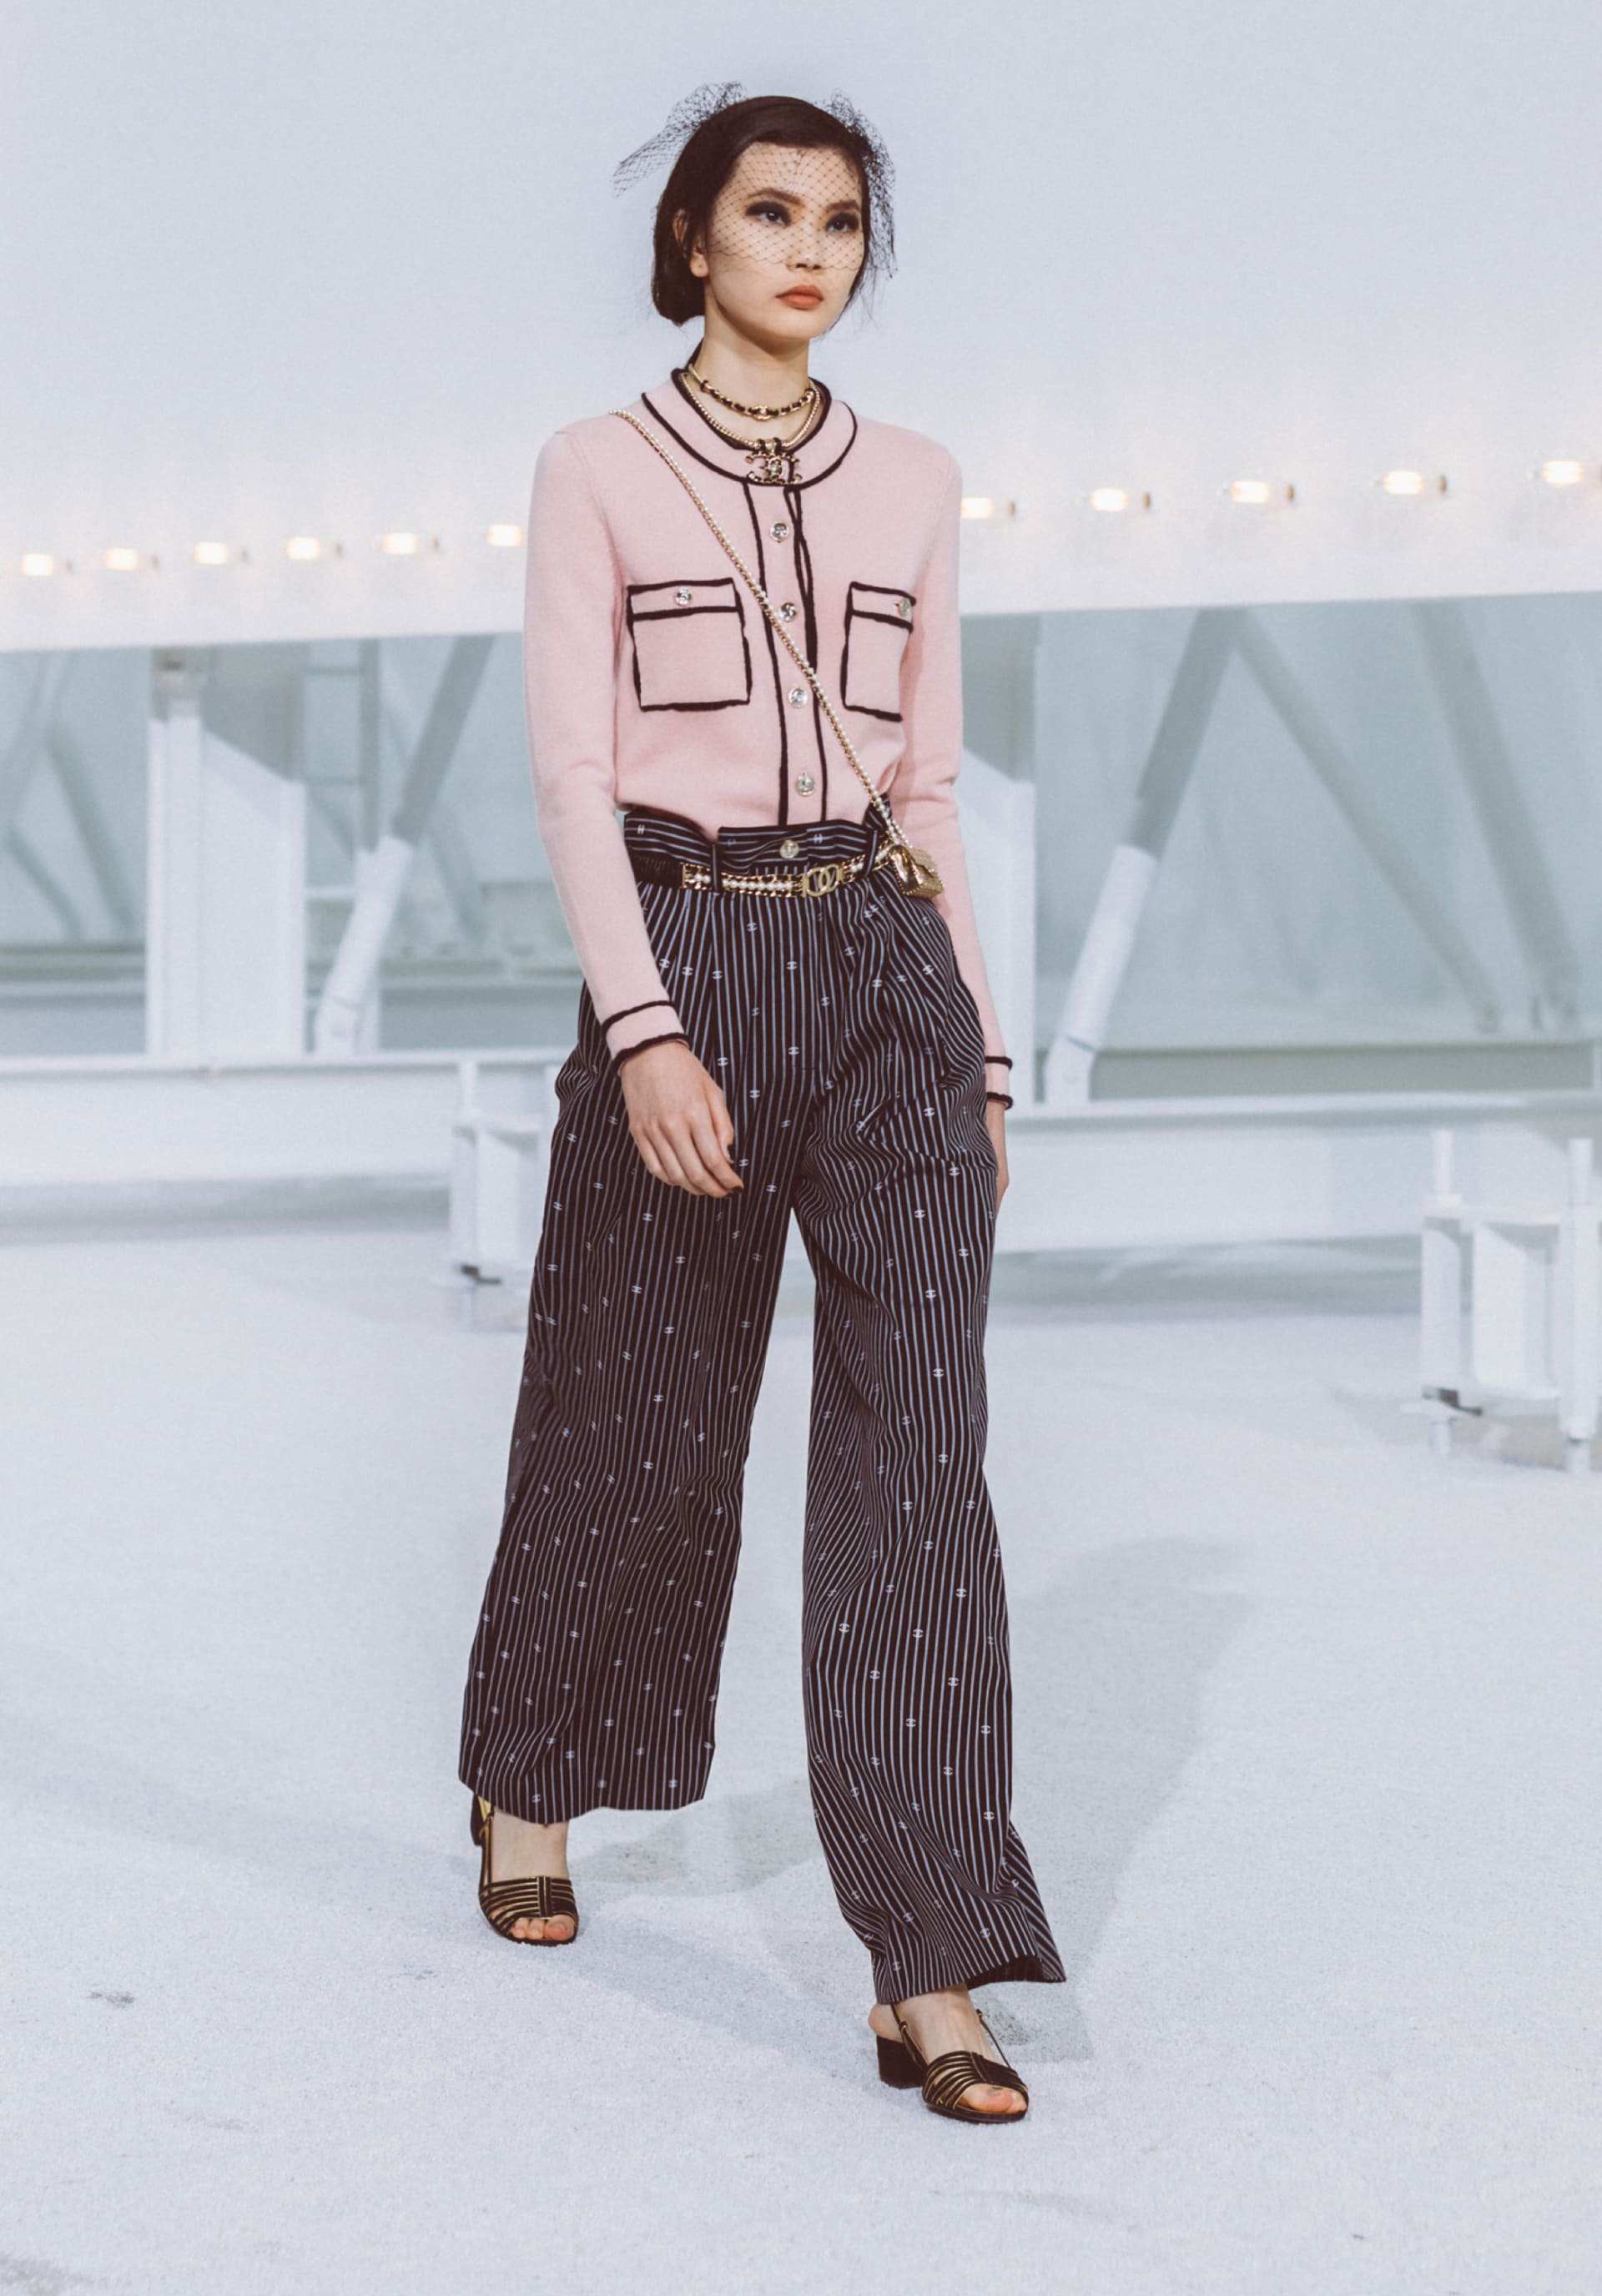 View 1 - Look11 - Spring-Summer 2021 - see full sized version